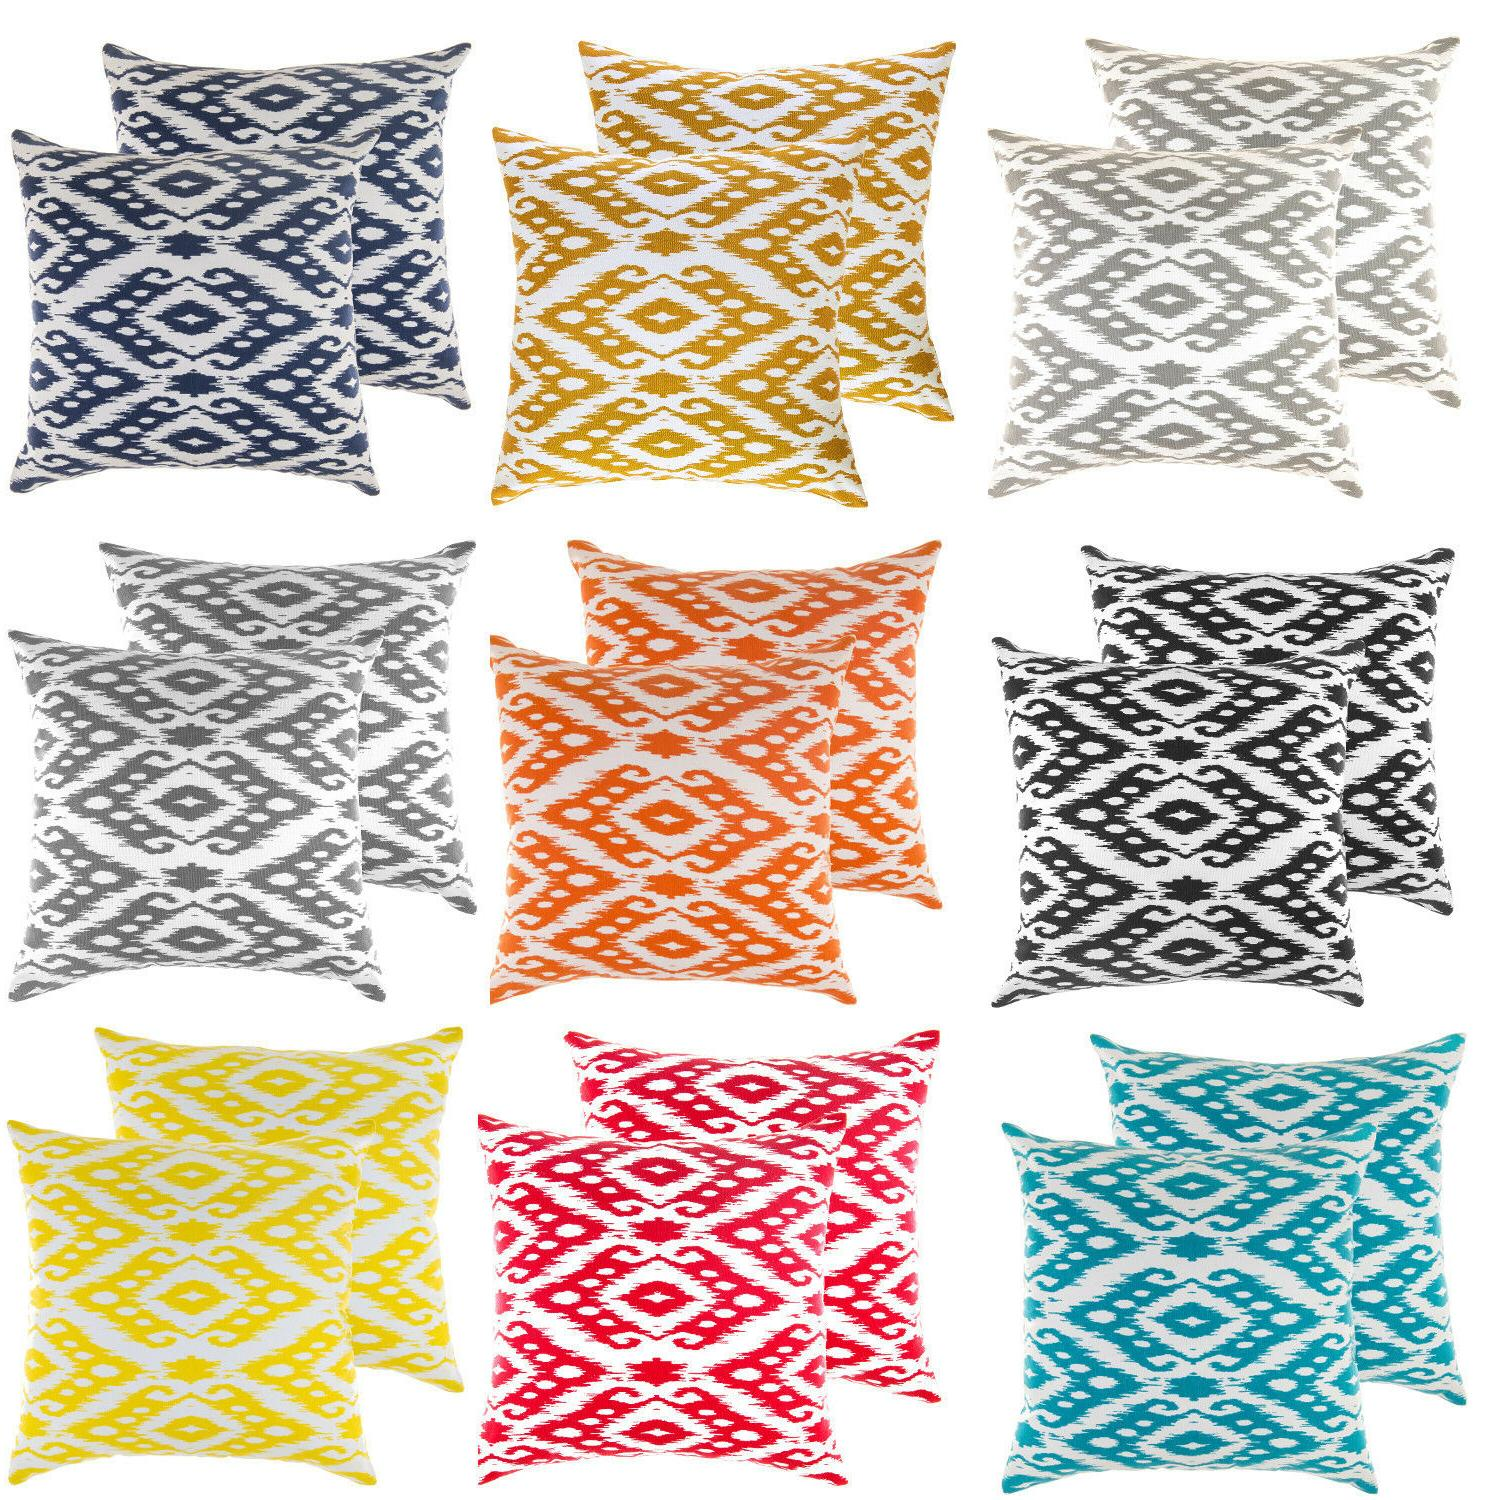 TreeWool,  Throw Pillow Covers in Cotton Canvas Ogee Ikat Di